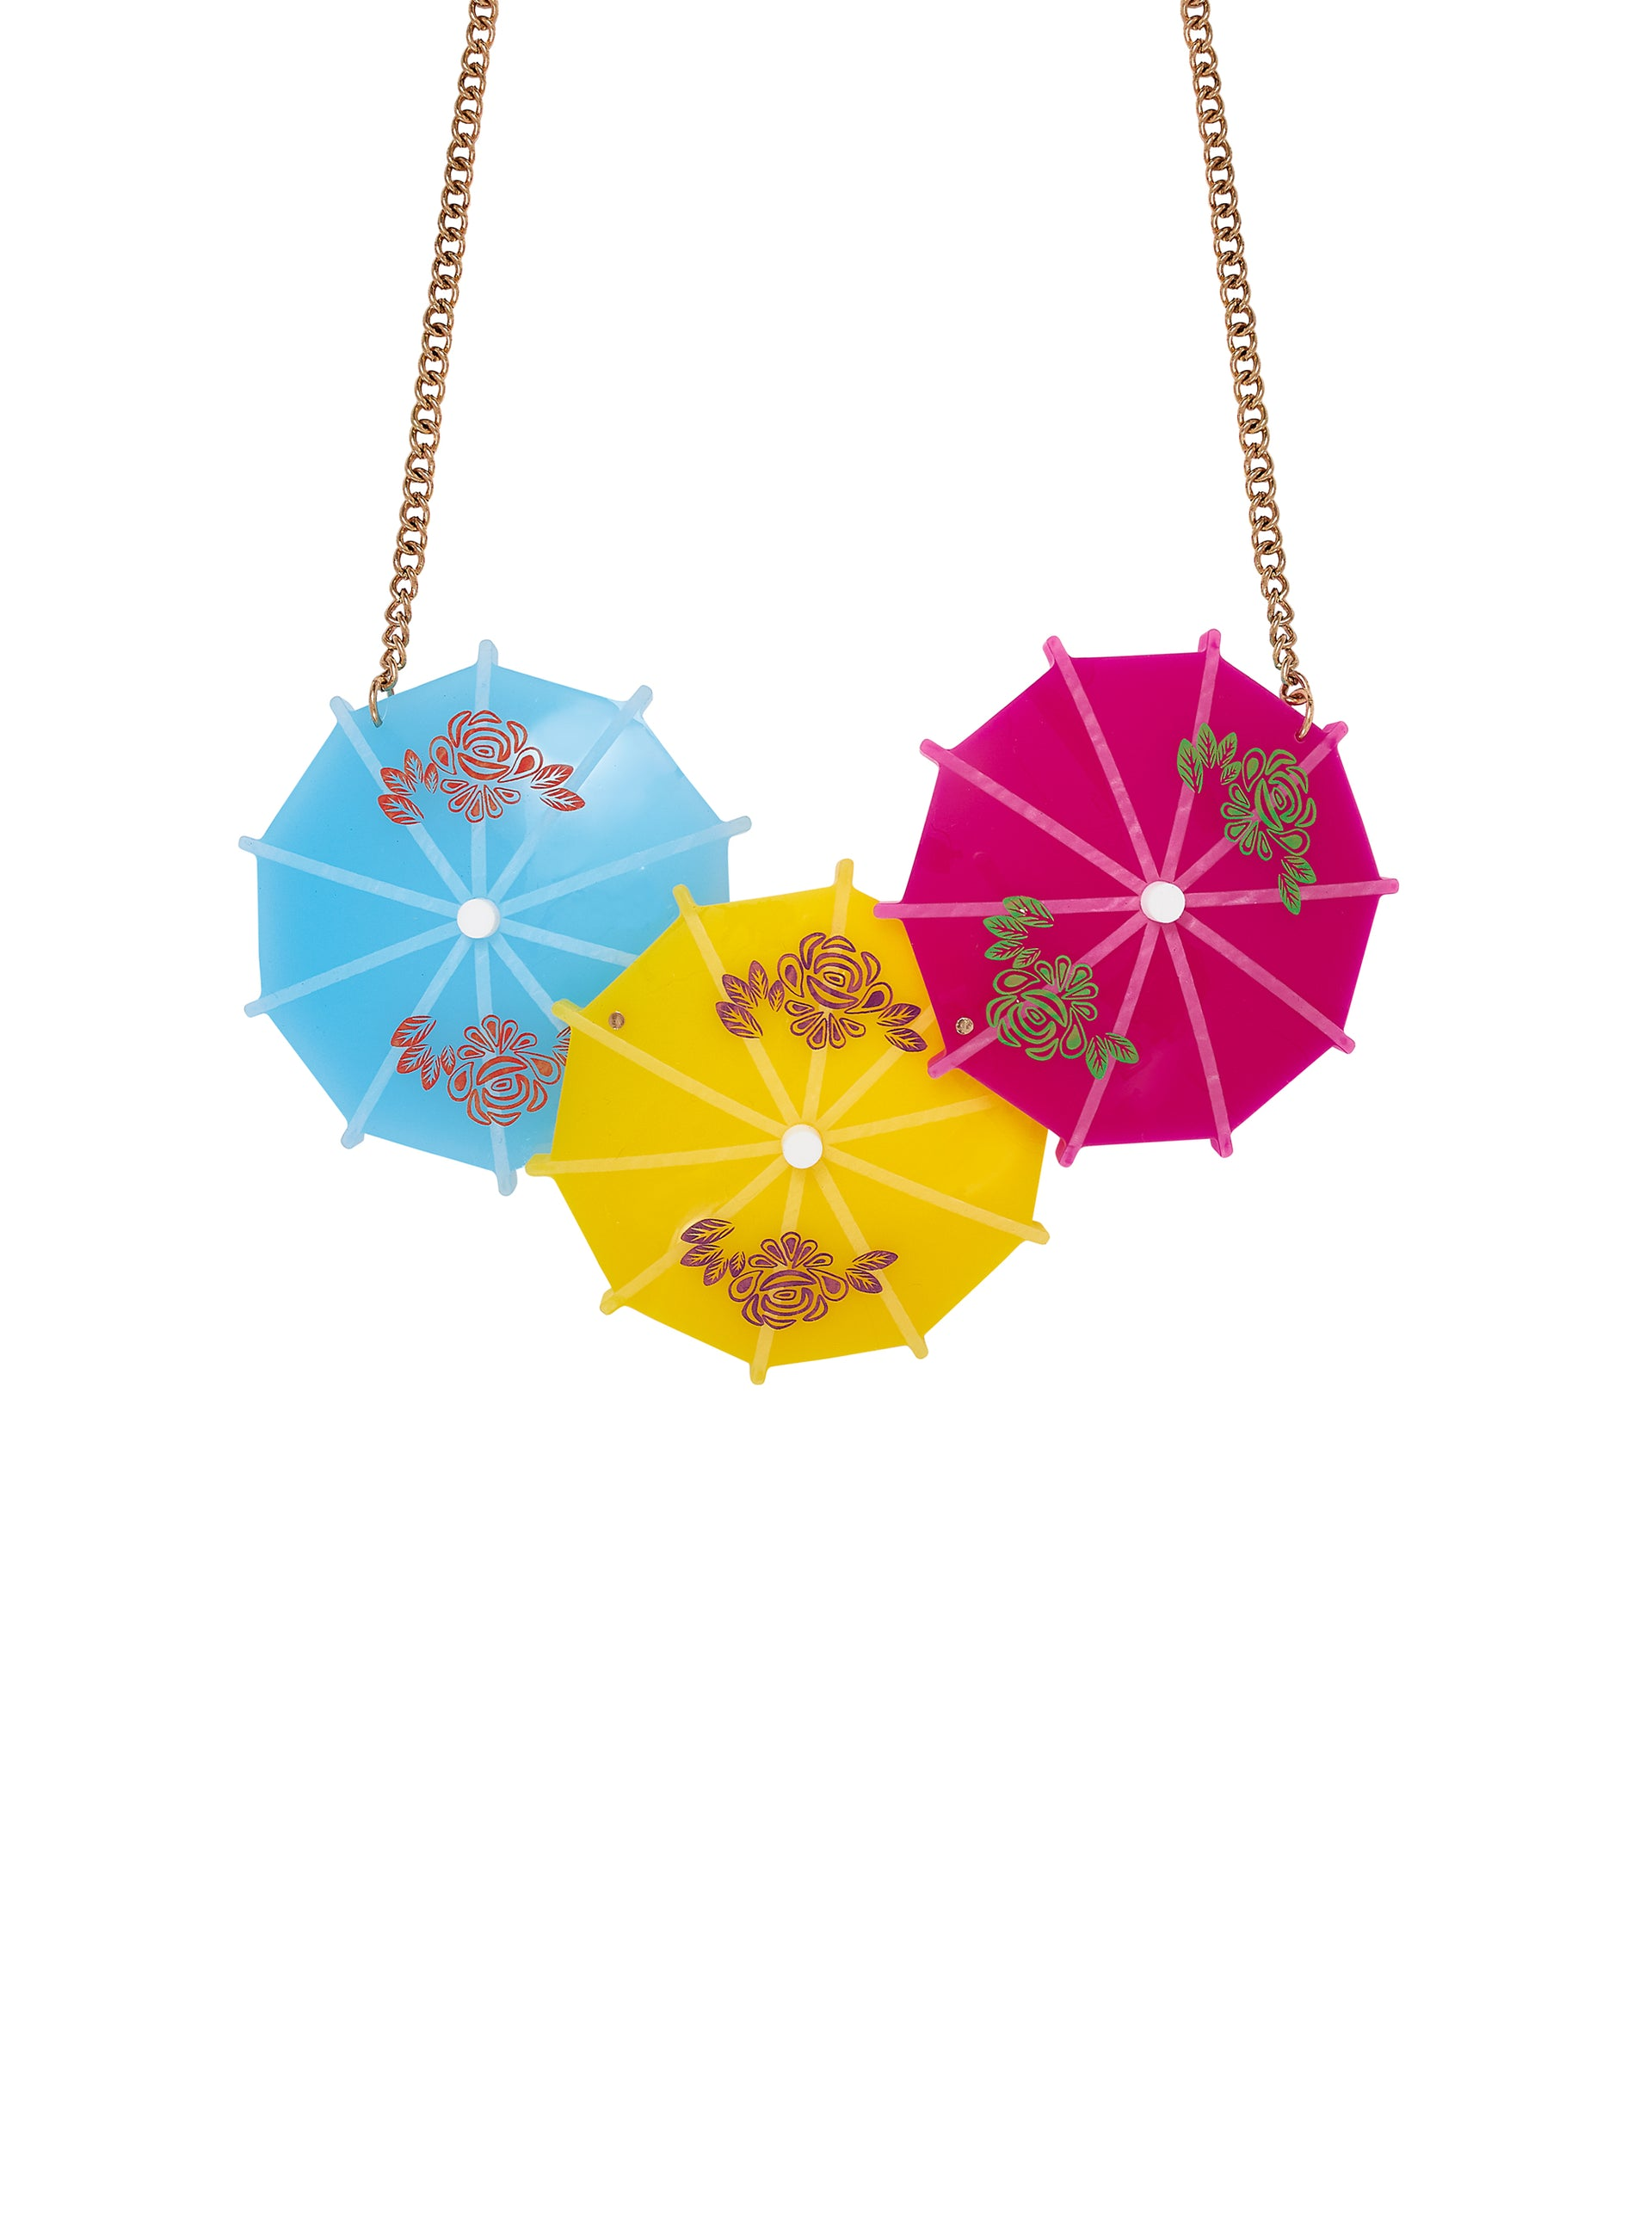 Cocktail-Umbrella-Statement-Necklace